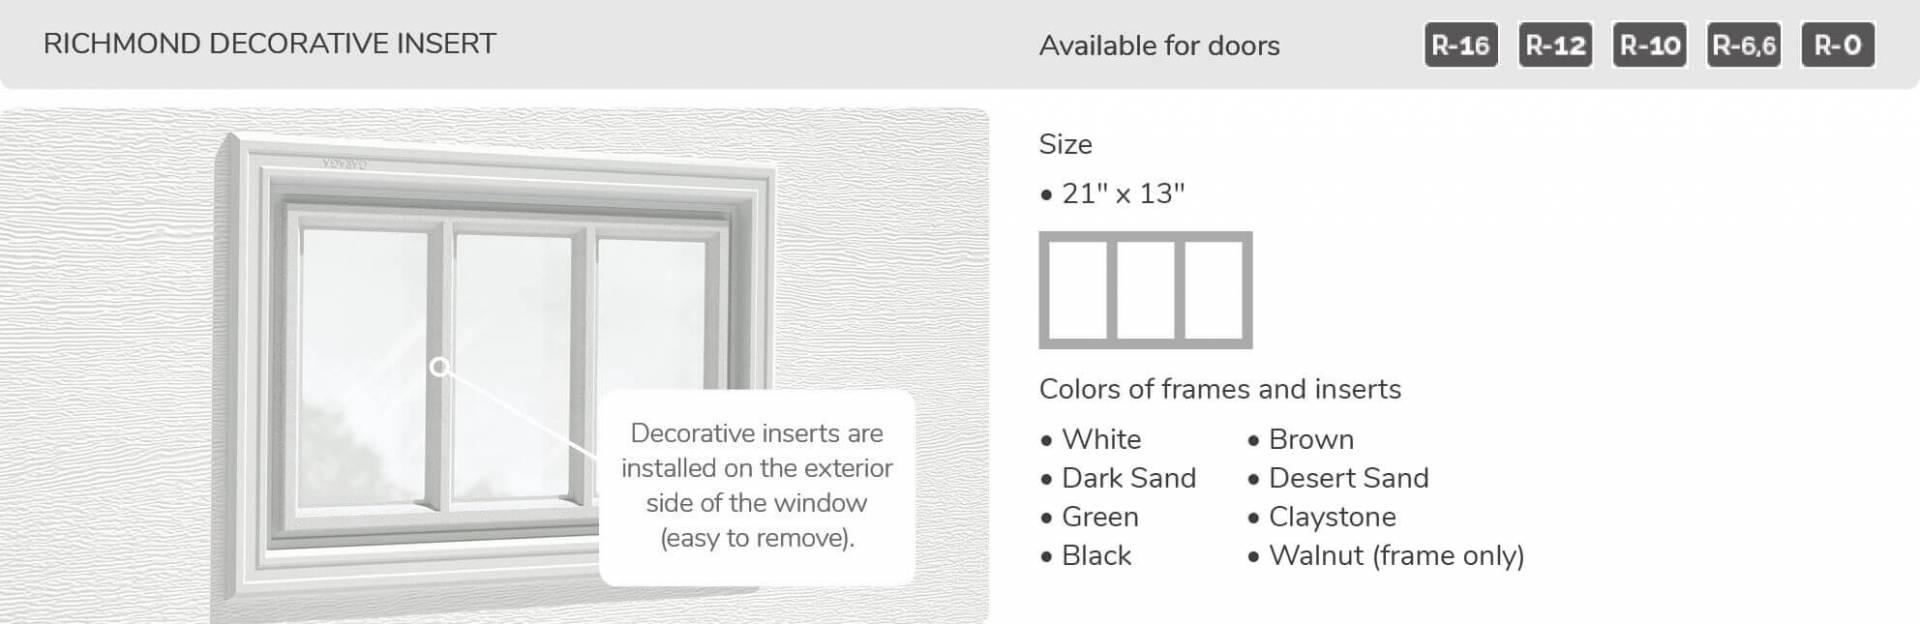 Richmond Decorative Inserts, 21' x 13', available for doors R-16, R-12, R-10, R-6,6 and R-0